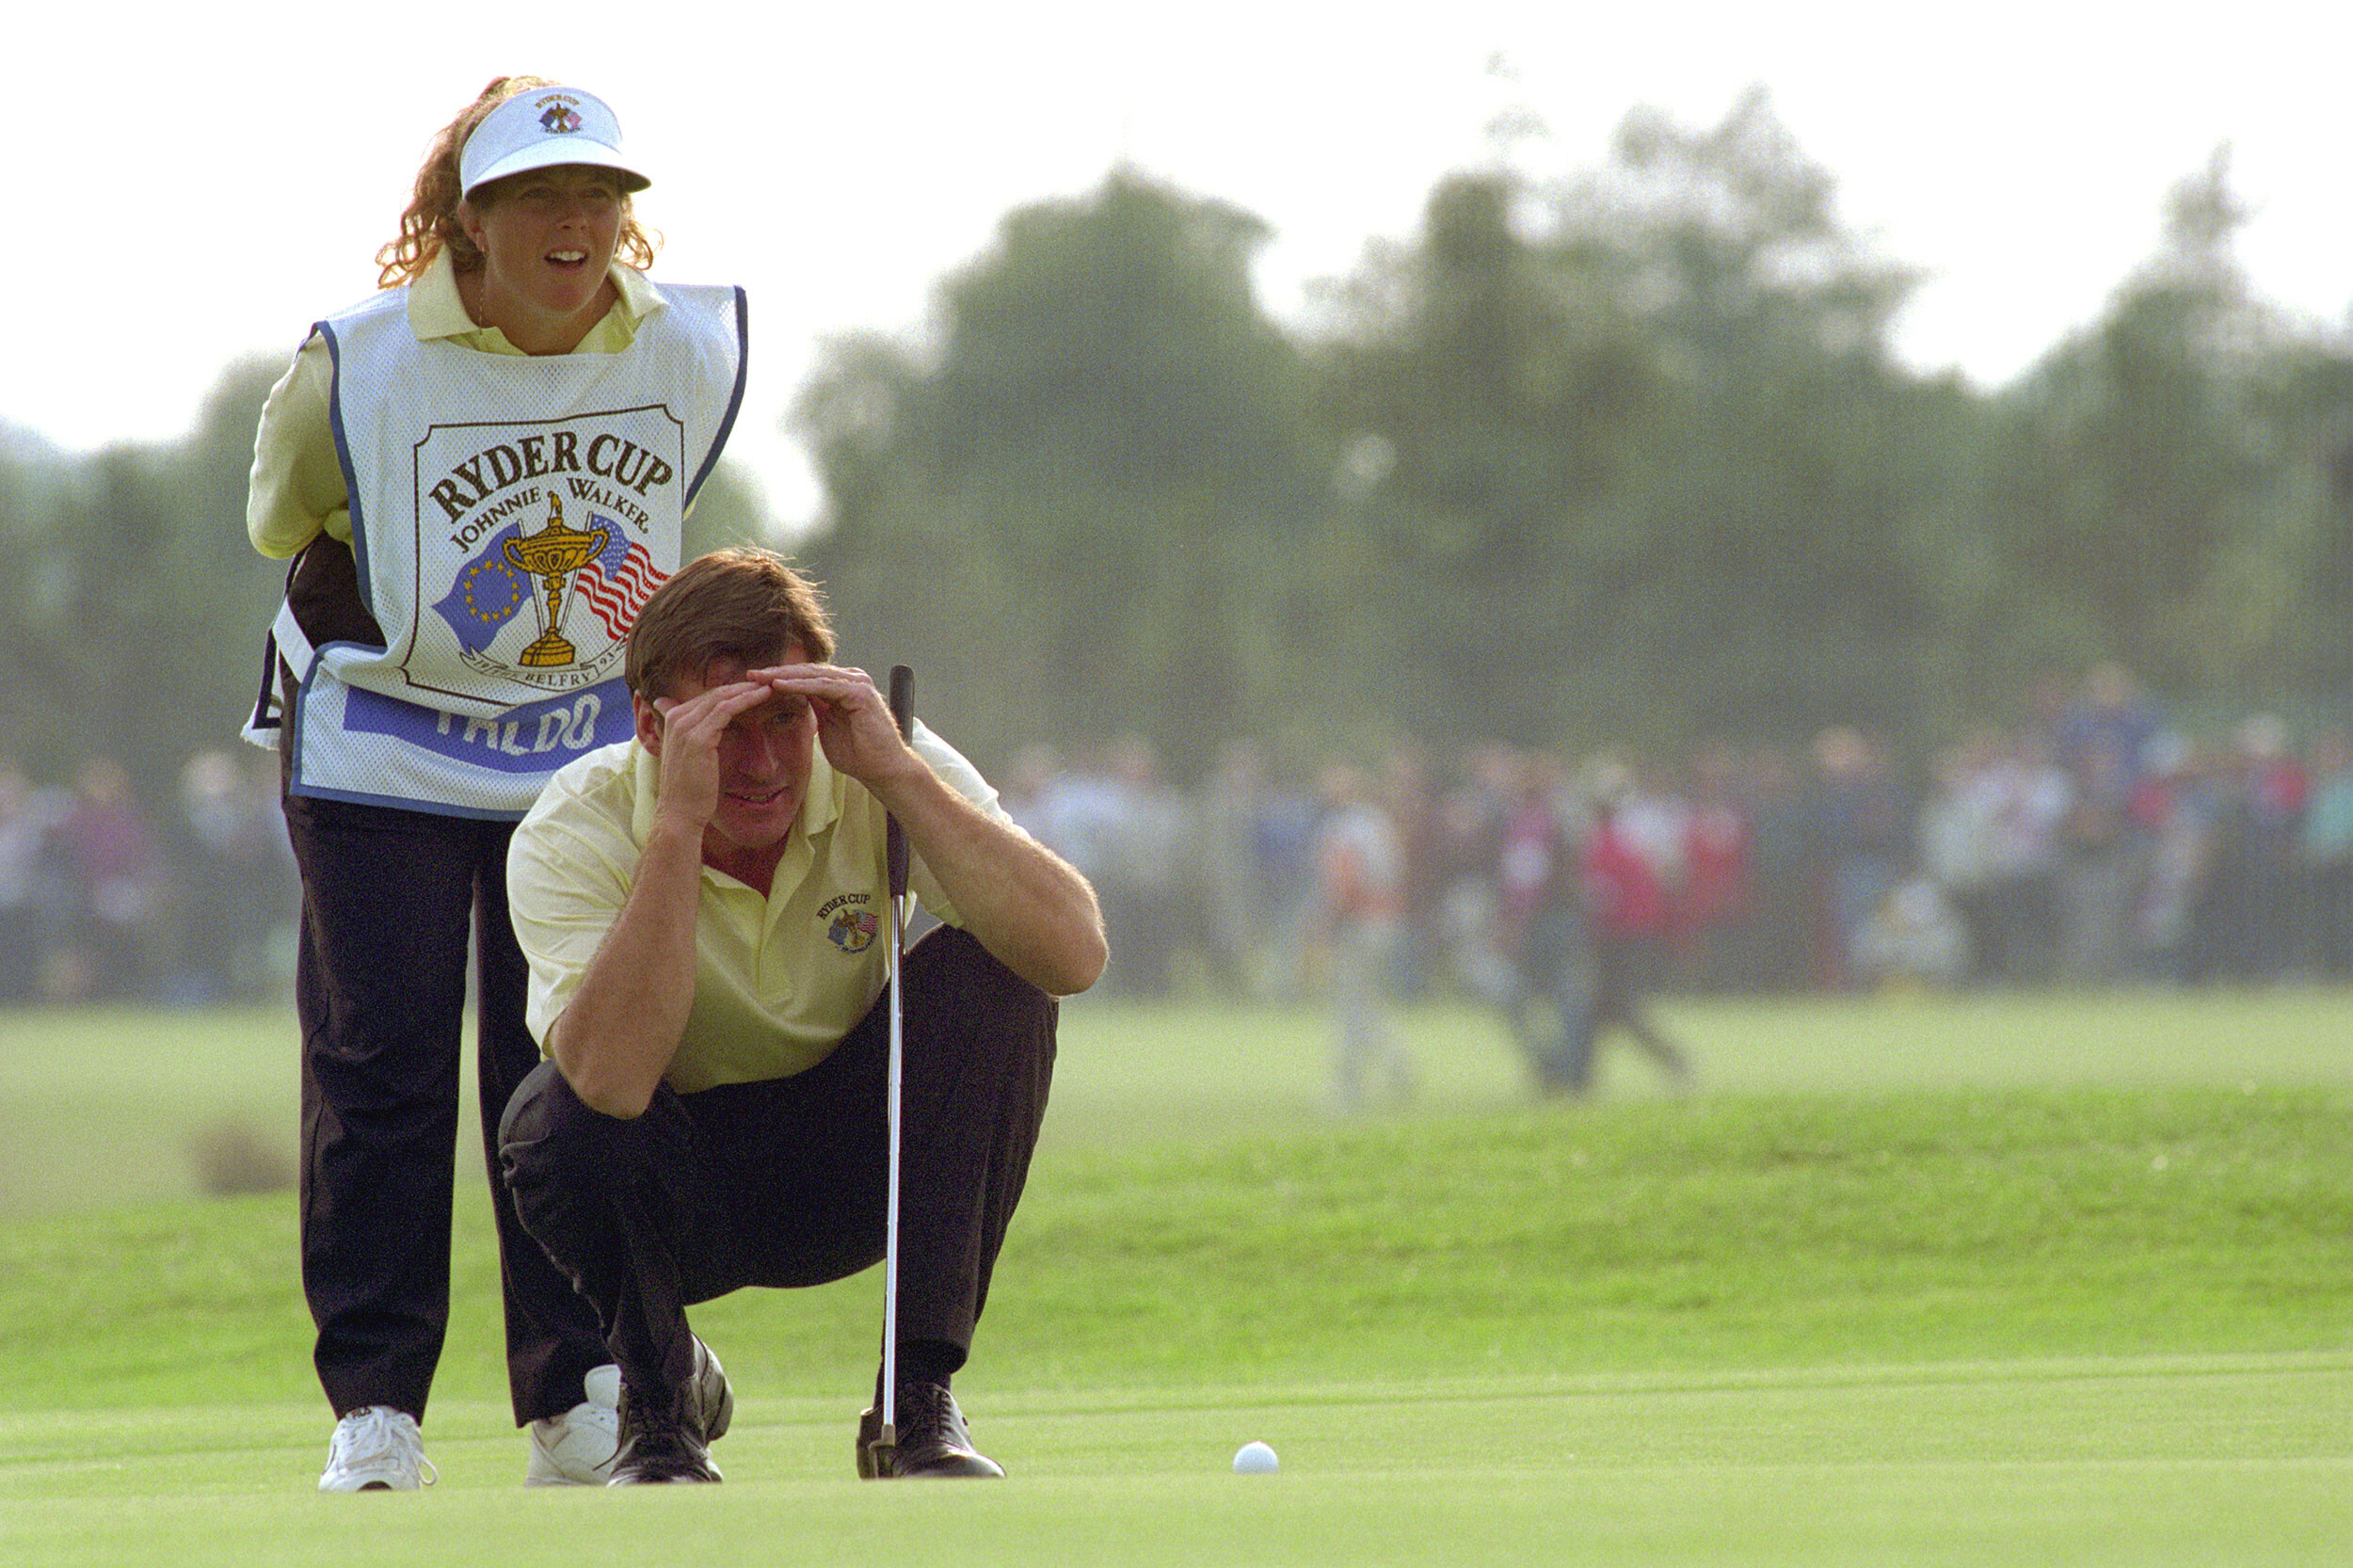 Ryder Cup gets personal: Hey! 'Golf' fans, leave those guys alone, say wives and girlfriends